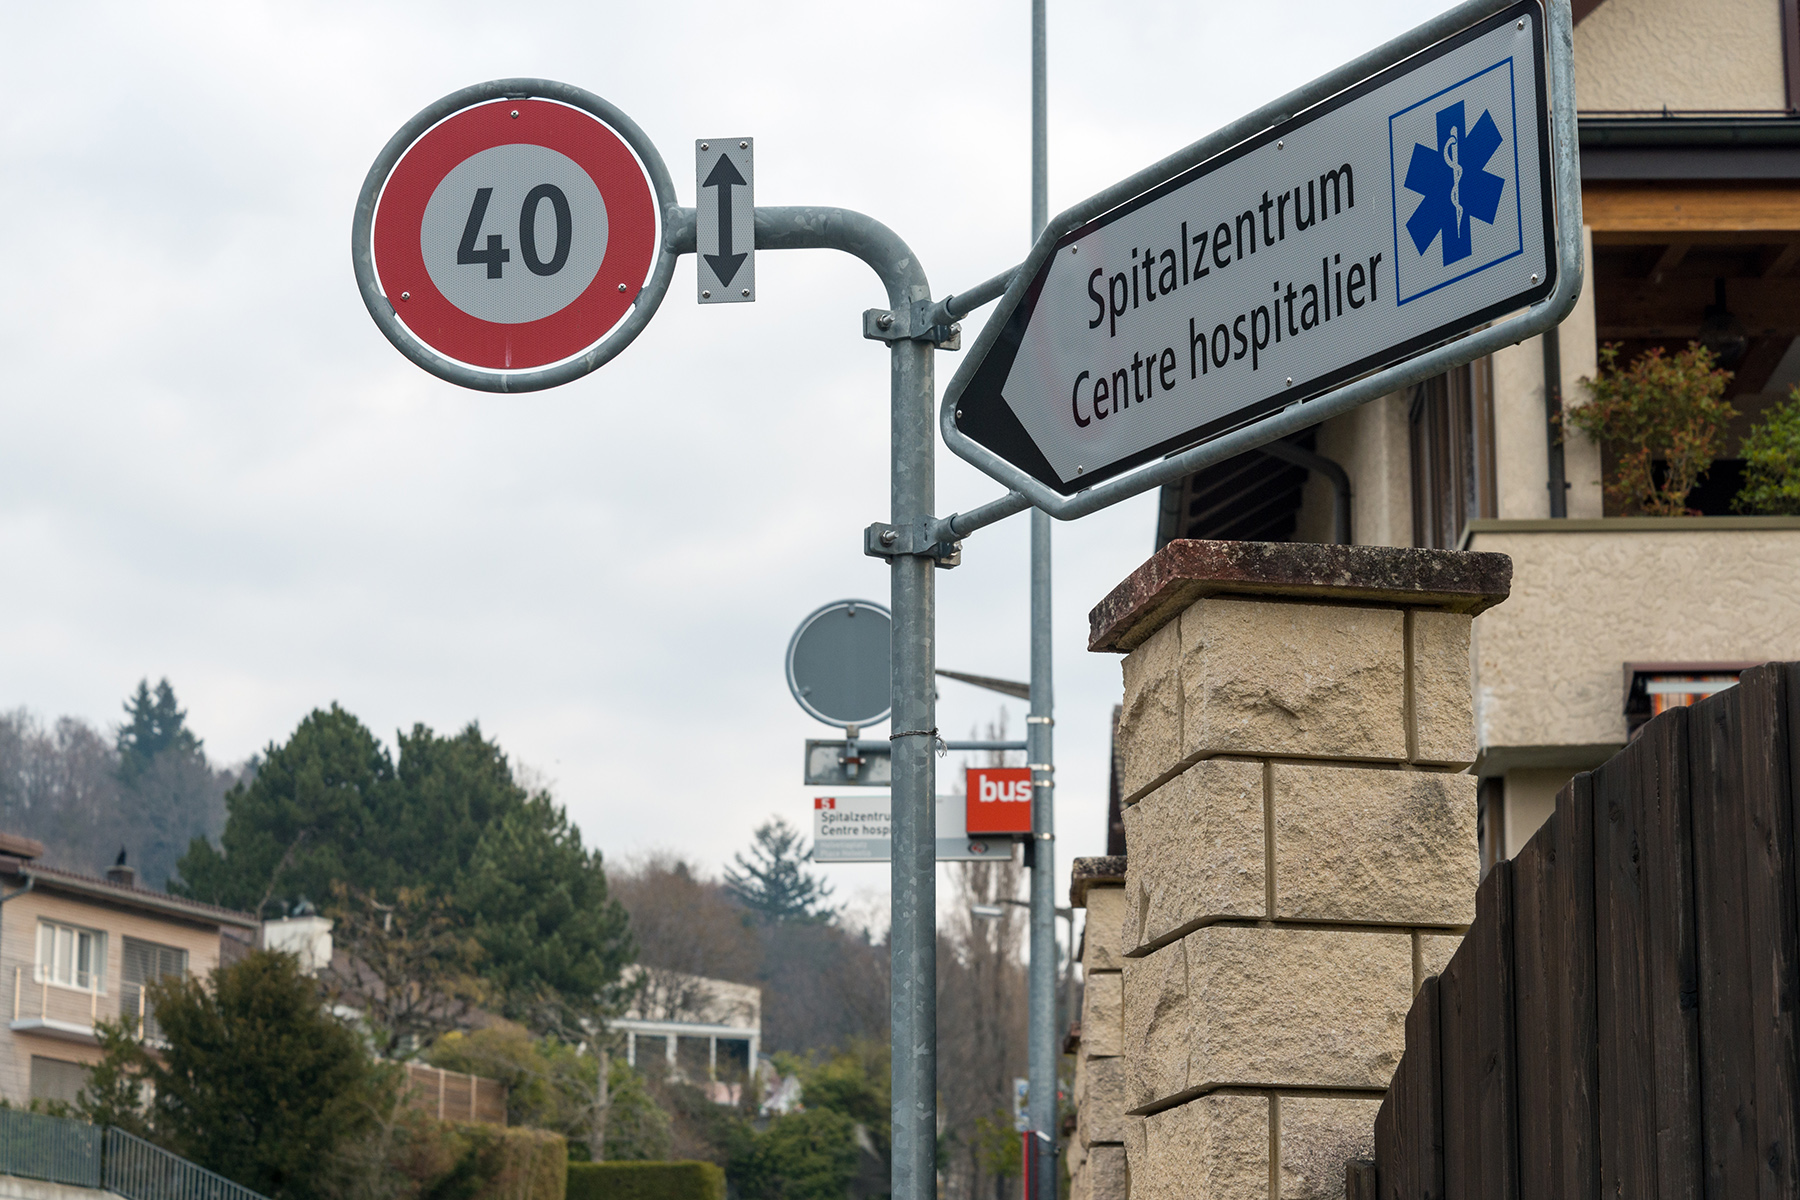 A bilingual street sign leading the way to a hospital in Biel/Bienne